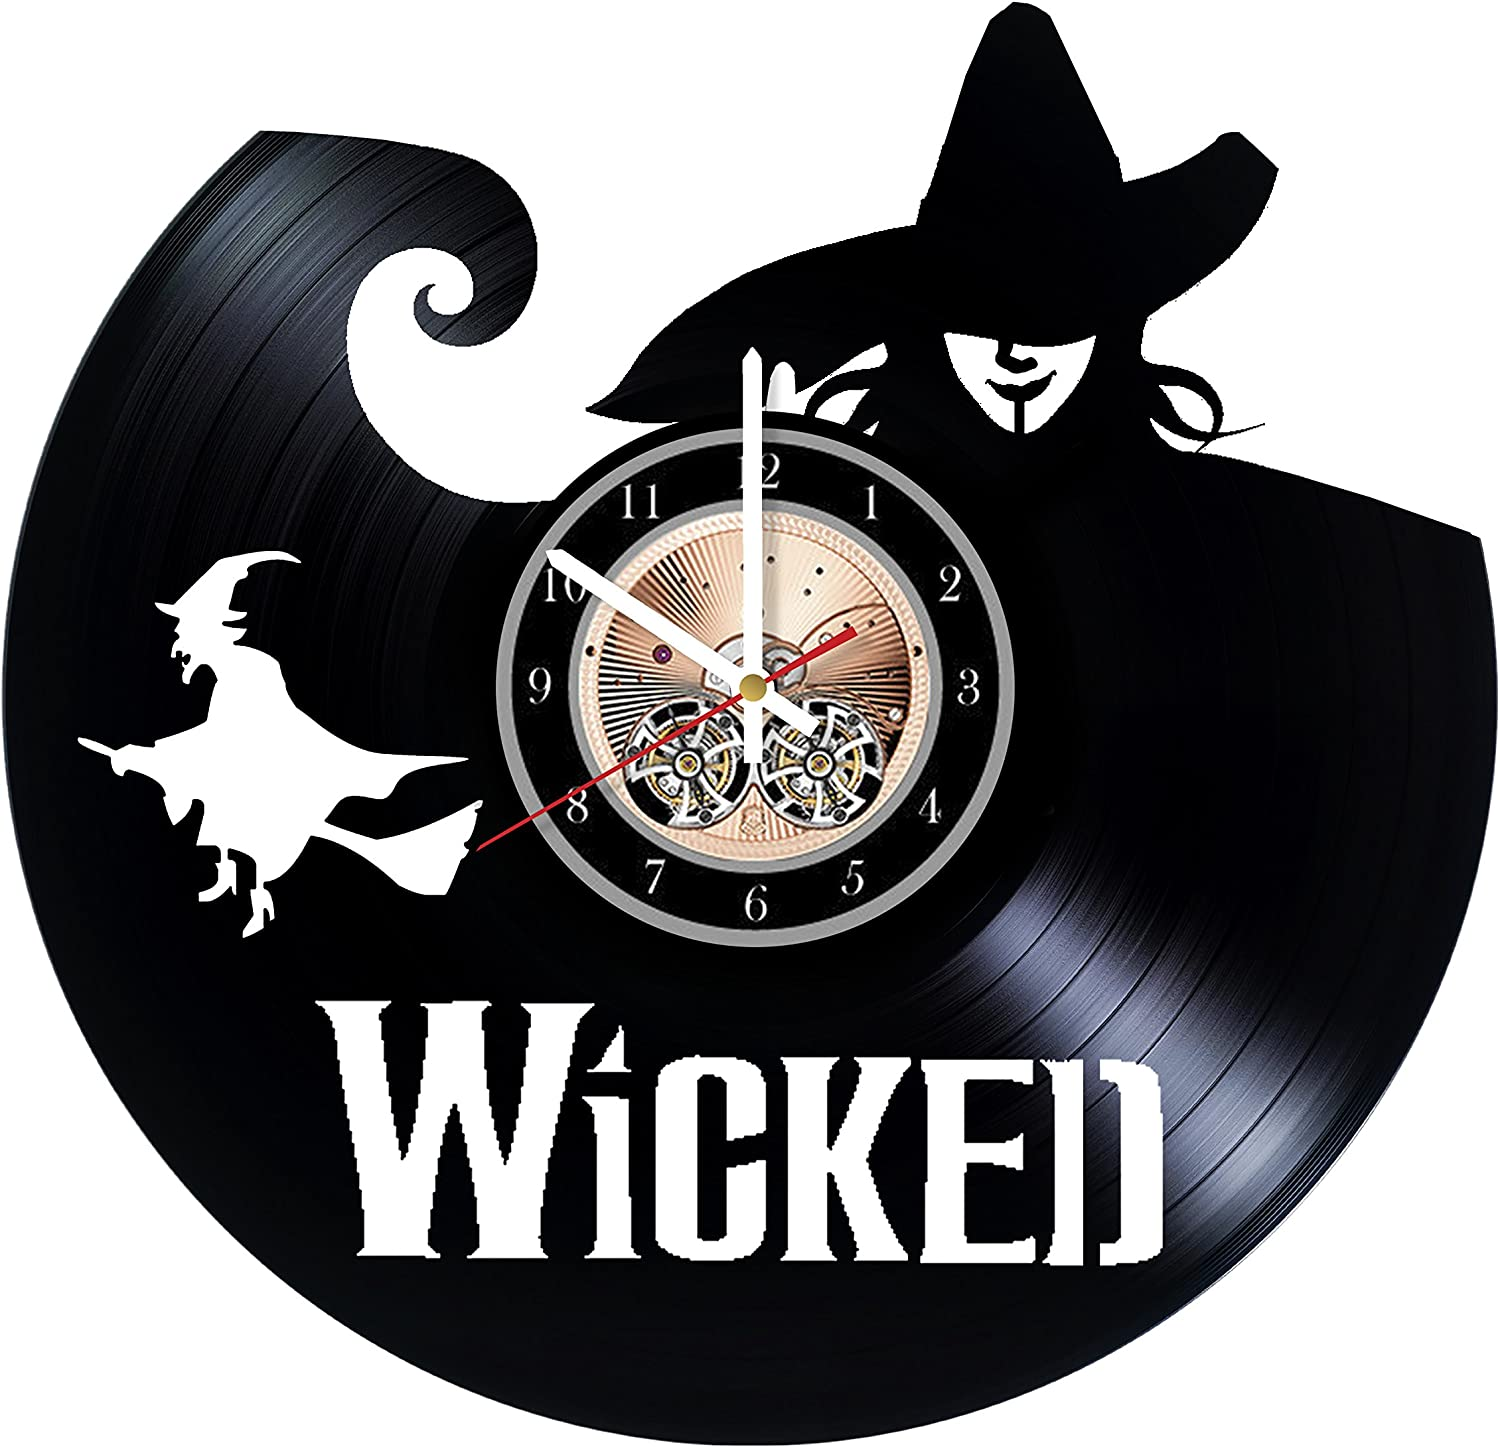 """Wicked Broadway Musical Art Vinyl Record Wall Clock 12"""" - Really The Most Original Gift for Him and Her - Perfect Element of The Interior and Amazing Home Decor Idea"""